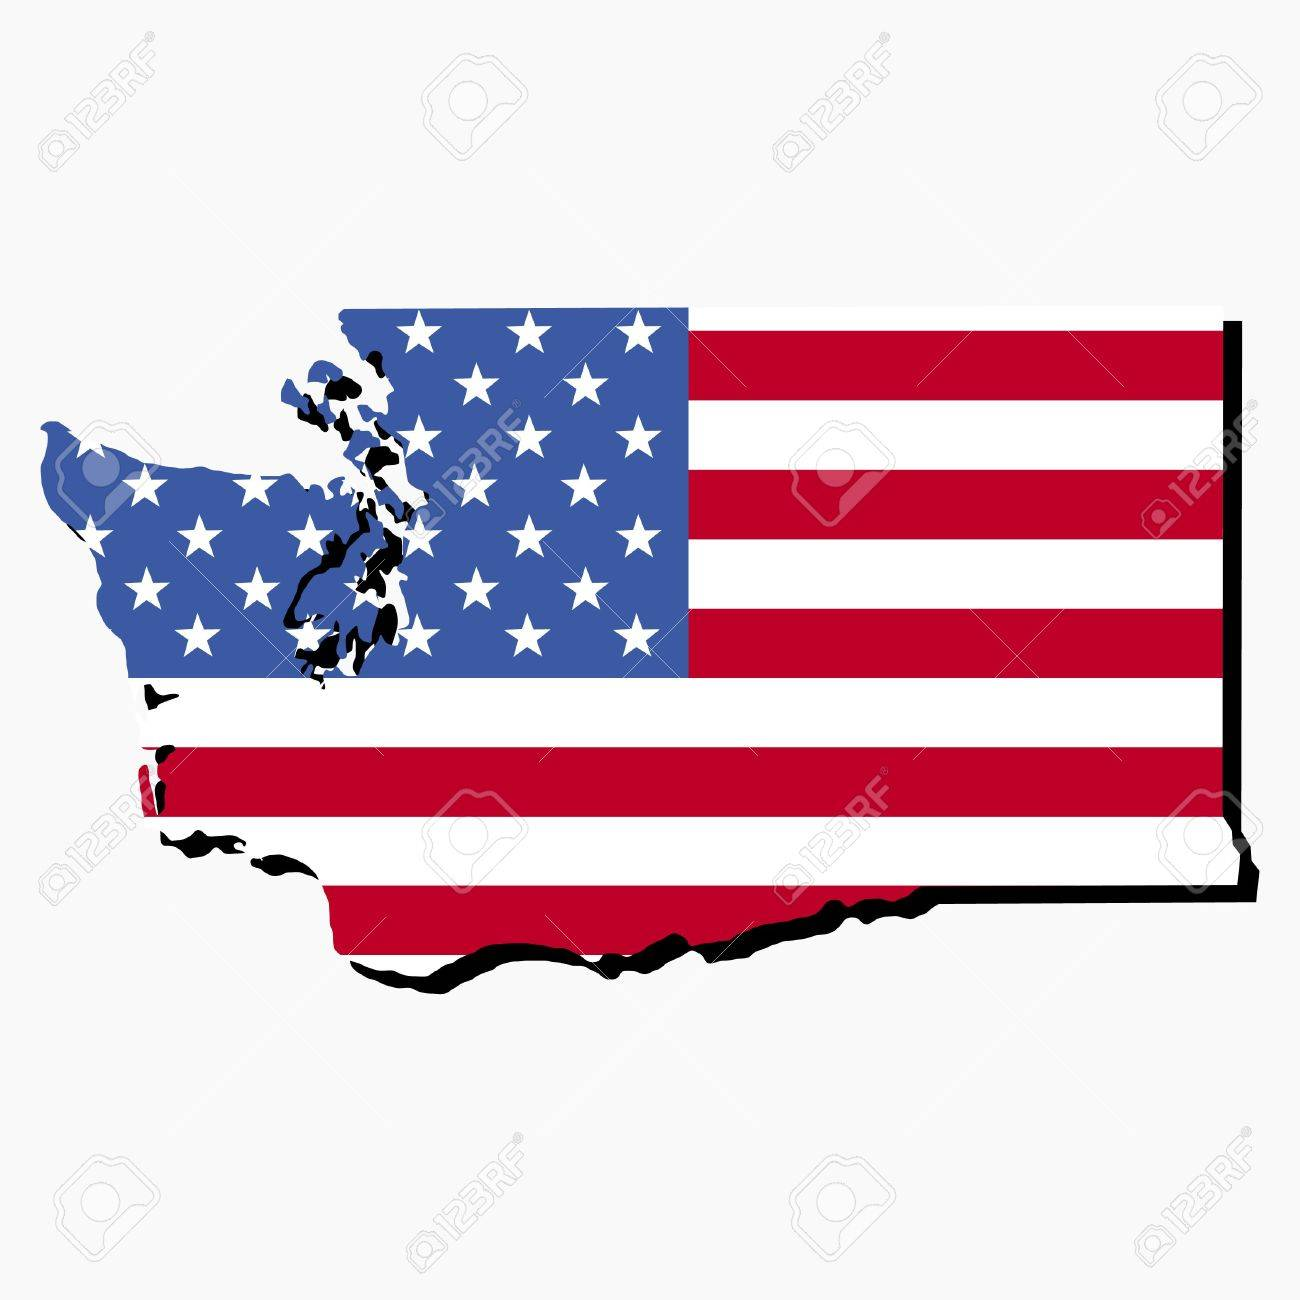 Map Of The State Of Washington And American Flag Illustration - Us map american flag